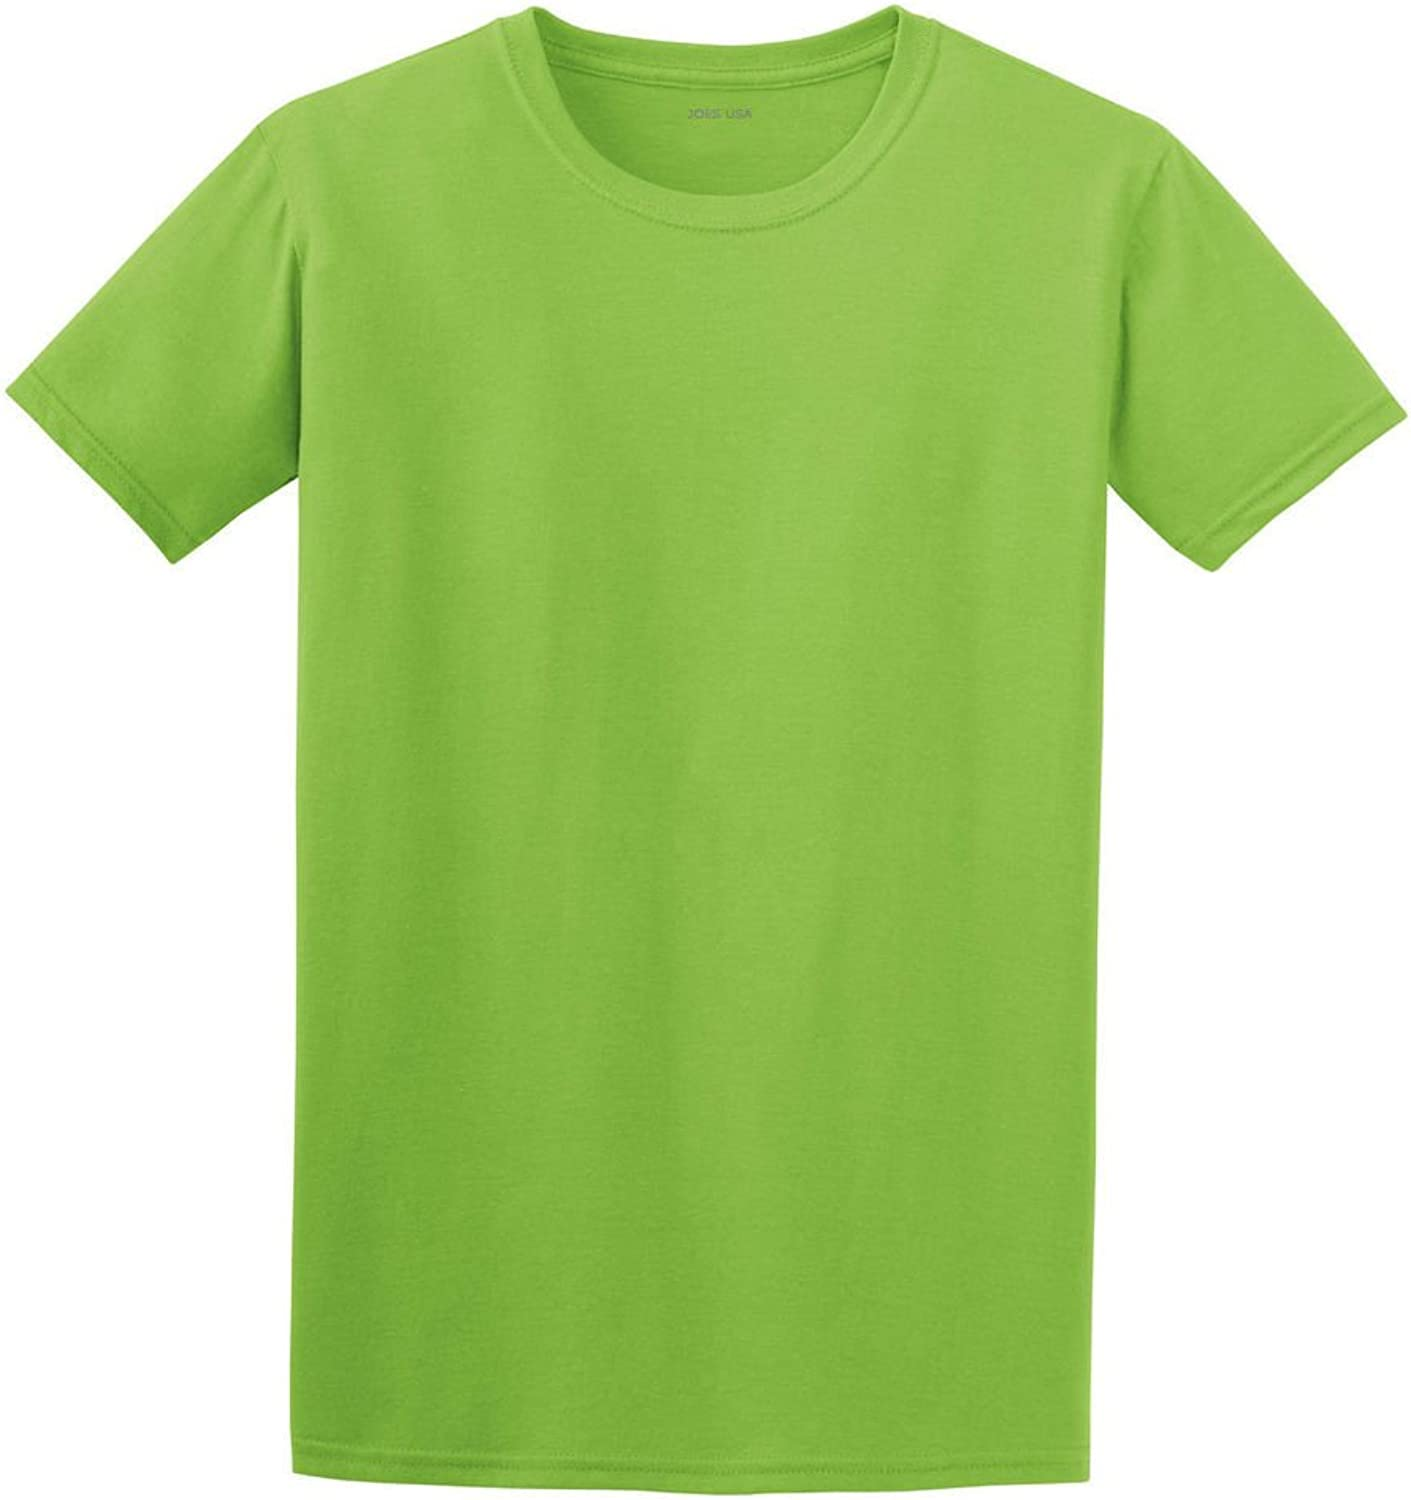 5e724e36b Joe's USA Lightweight Soft Cotton T-Shirts in 30 30 30 colors ba5878 ...